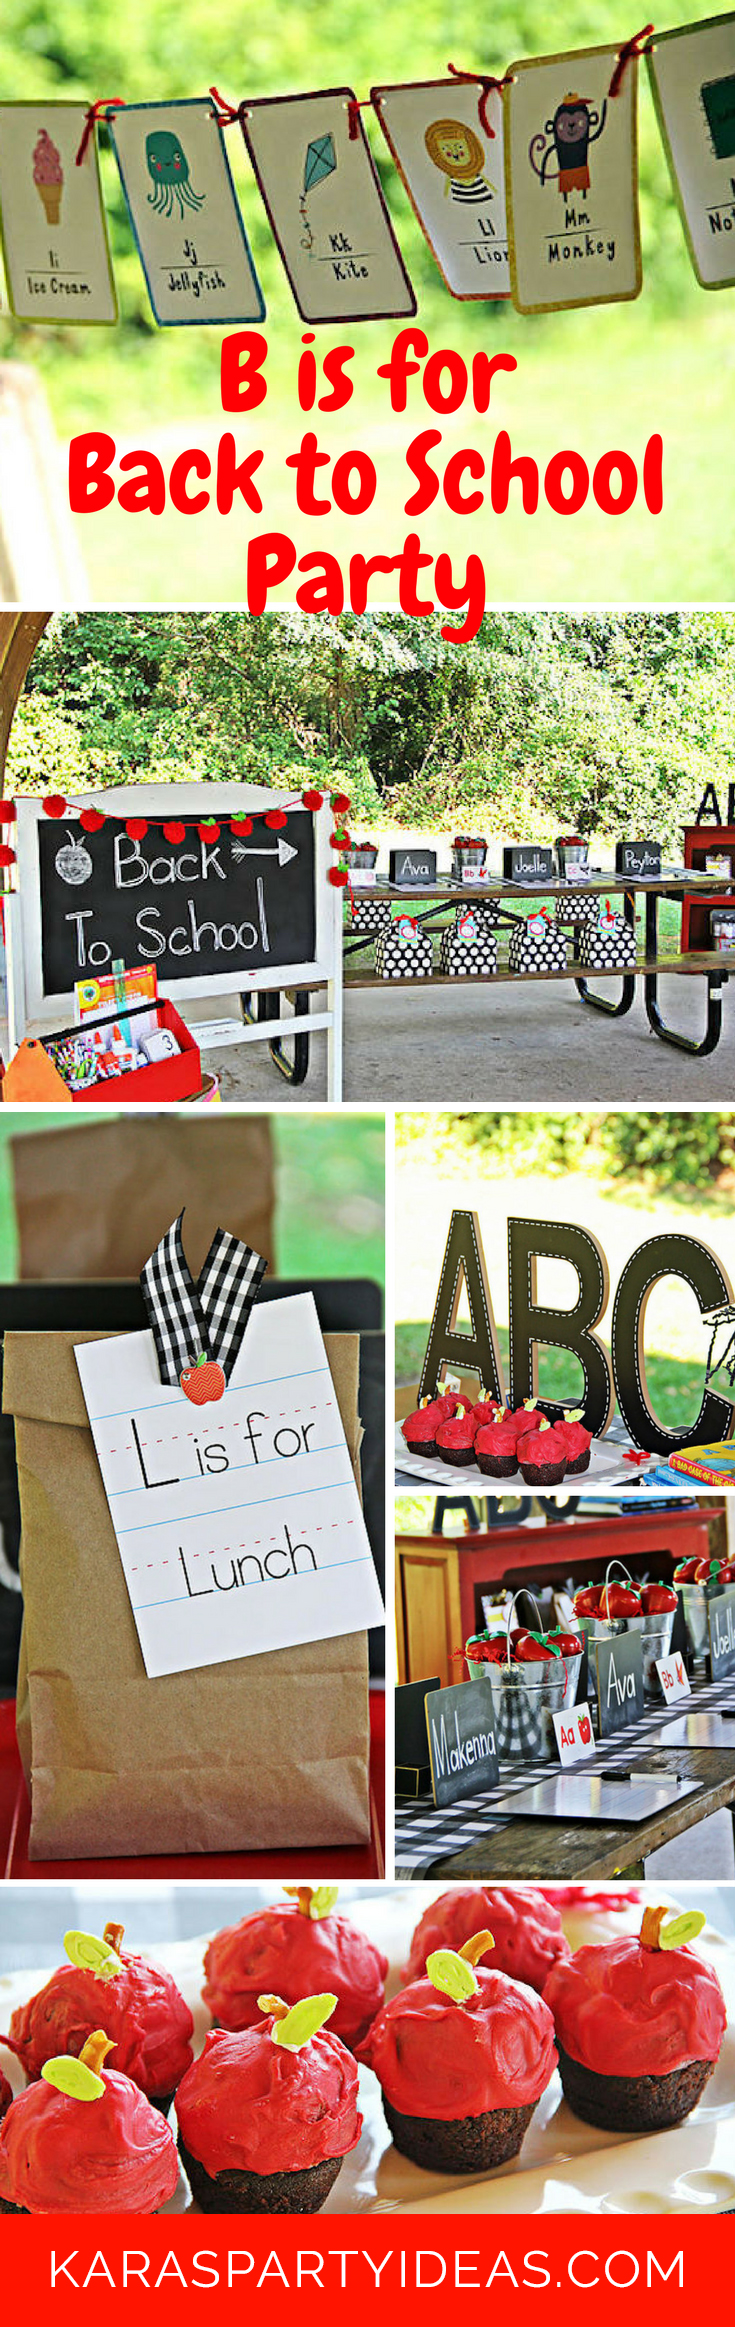 B is for Back to School Party via Kara's Party Ideas